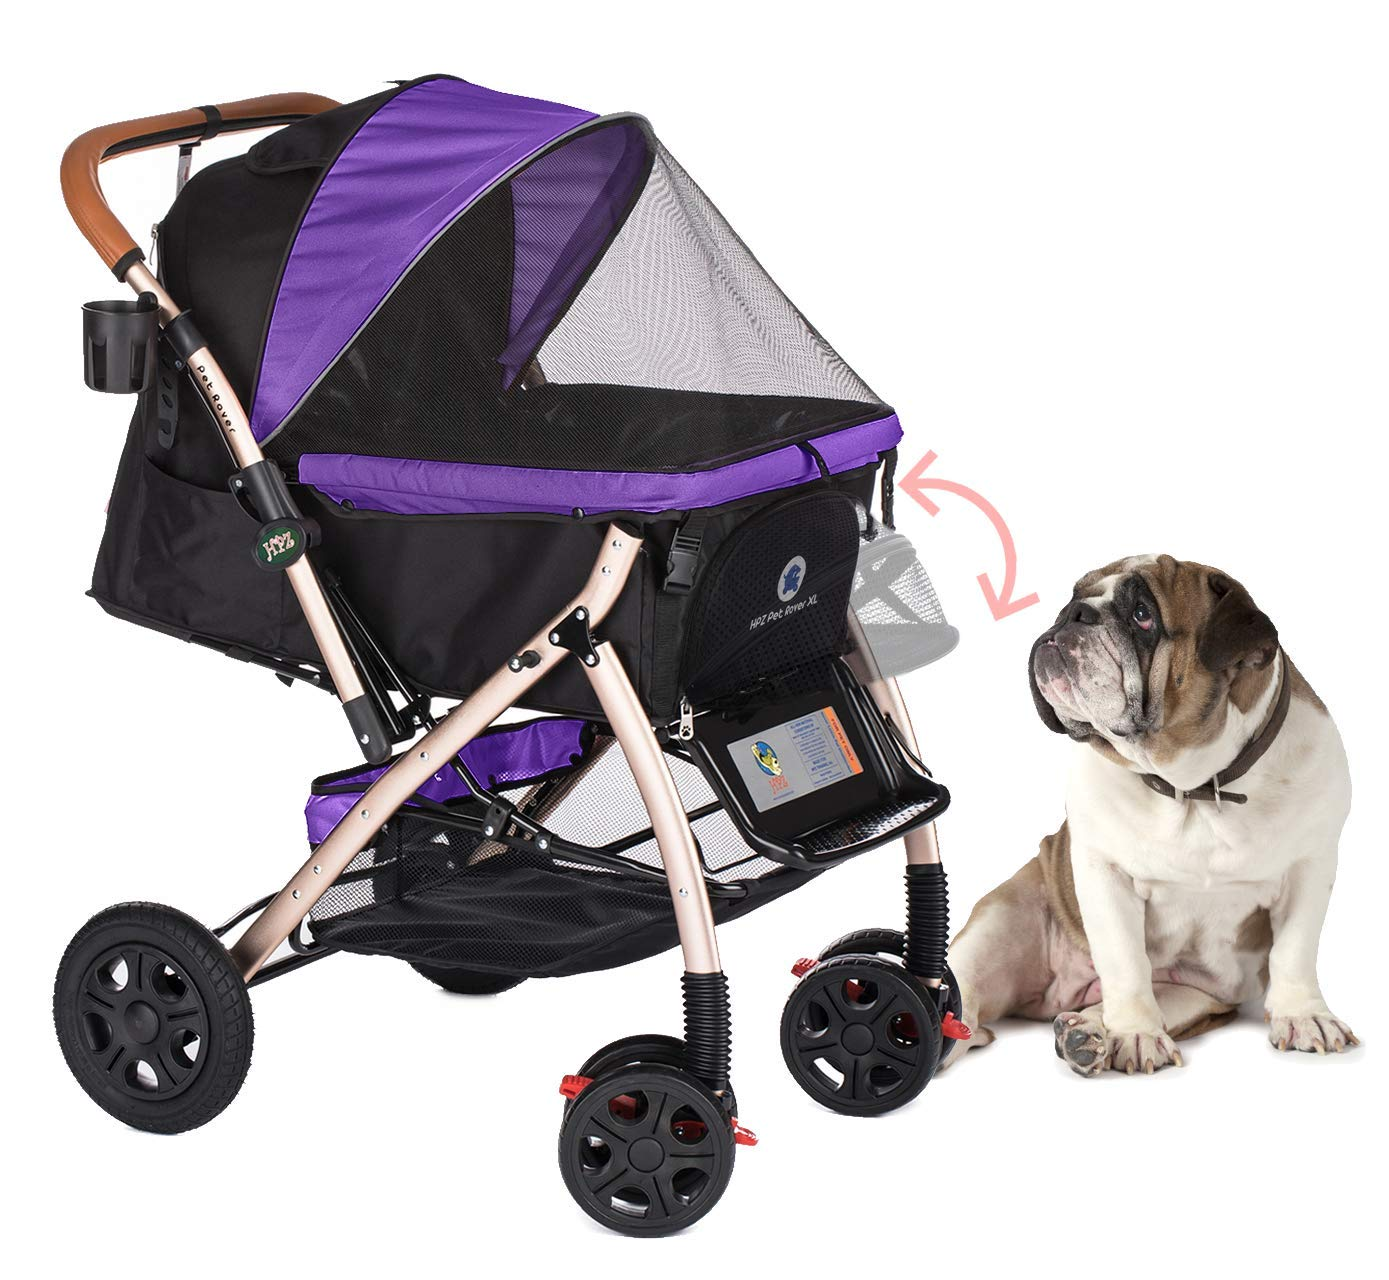 HPZ Pet Rover XL Extra-Long Premium Heavy Duty Dog/Cat/Pet Stroller Travel Carriage with Convertible Compartment/Zipperless Entry/Pump-Free Rubber Tires for Small, Medium, Large Pets (Purple) by HPZ-PR America